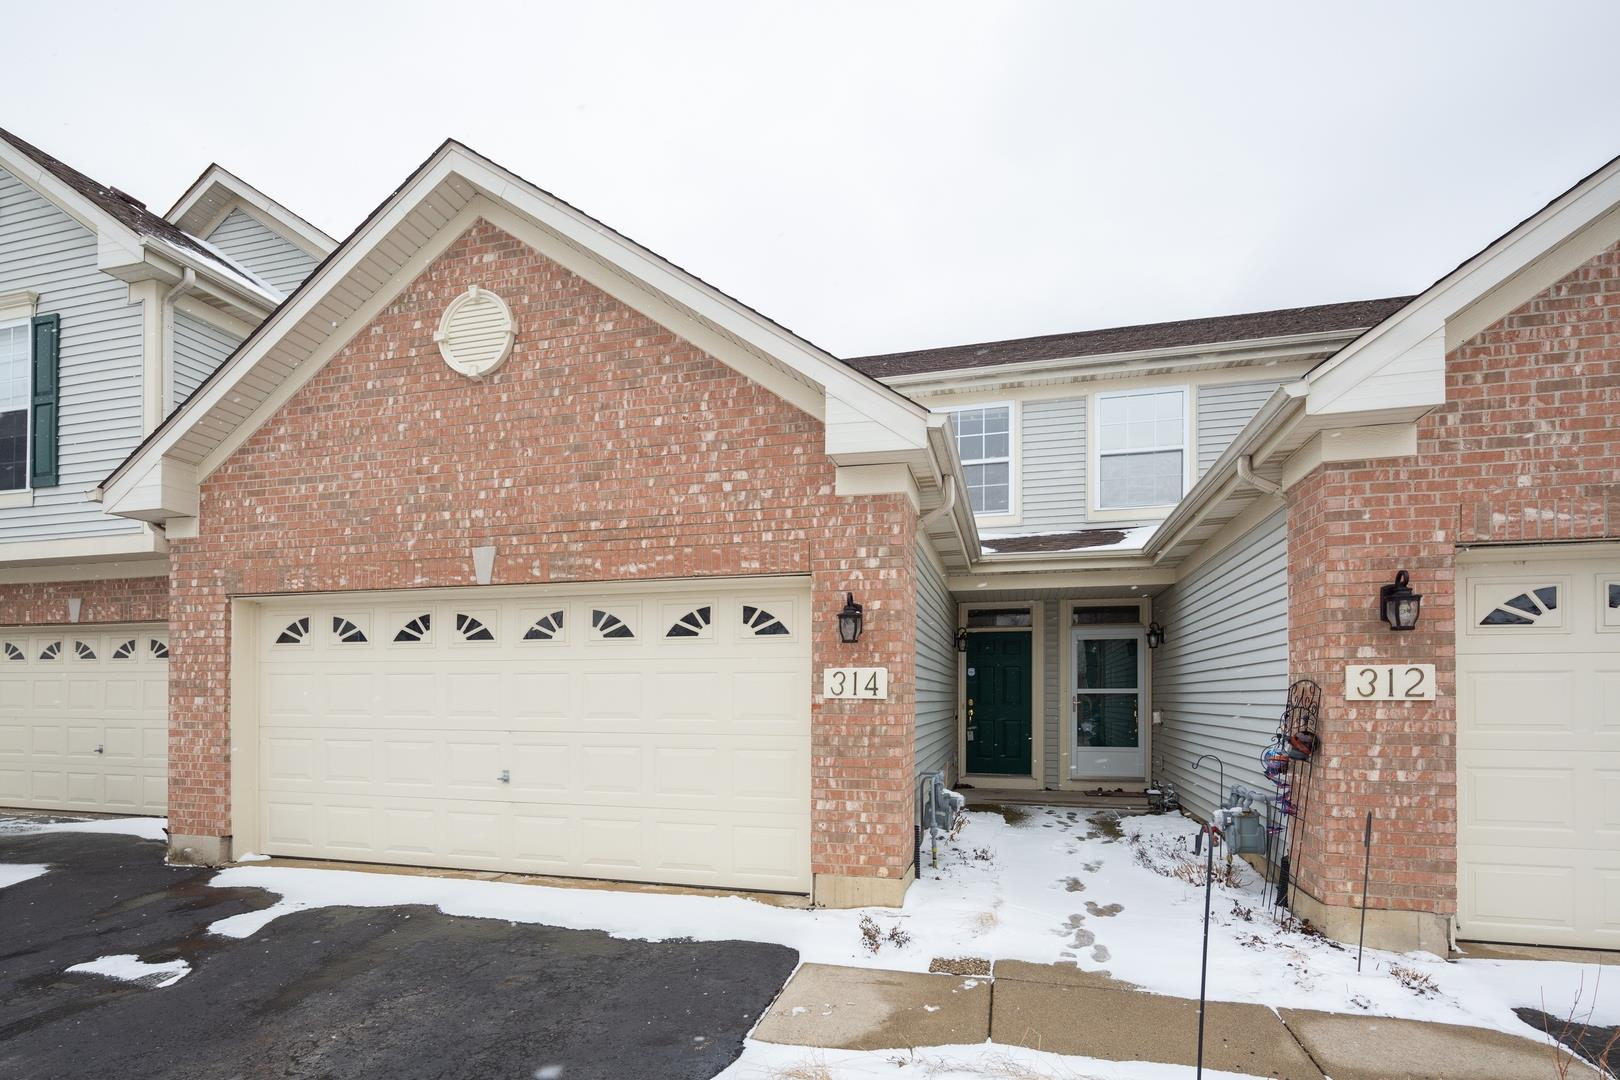 314 EMERALD Lane, Algonquin, IL 60102 - #: 10649378